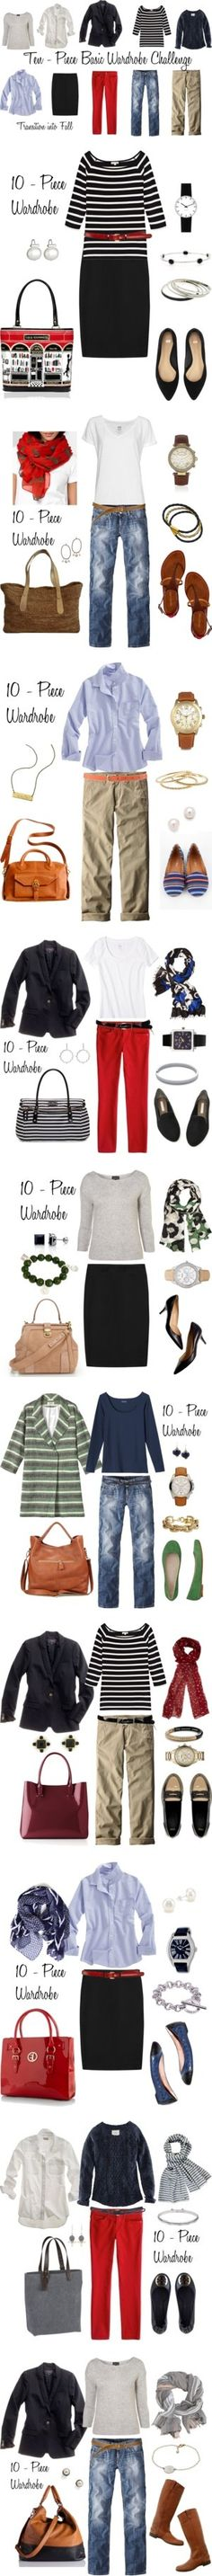 """Looks from the 10 - Piece Wardrobe Challenge"" by bluehydrangea ❤ liked on Polyvore 